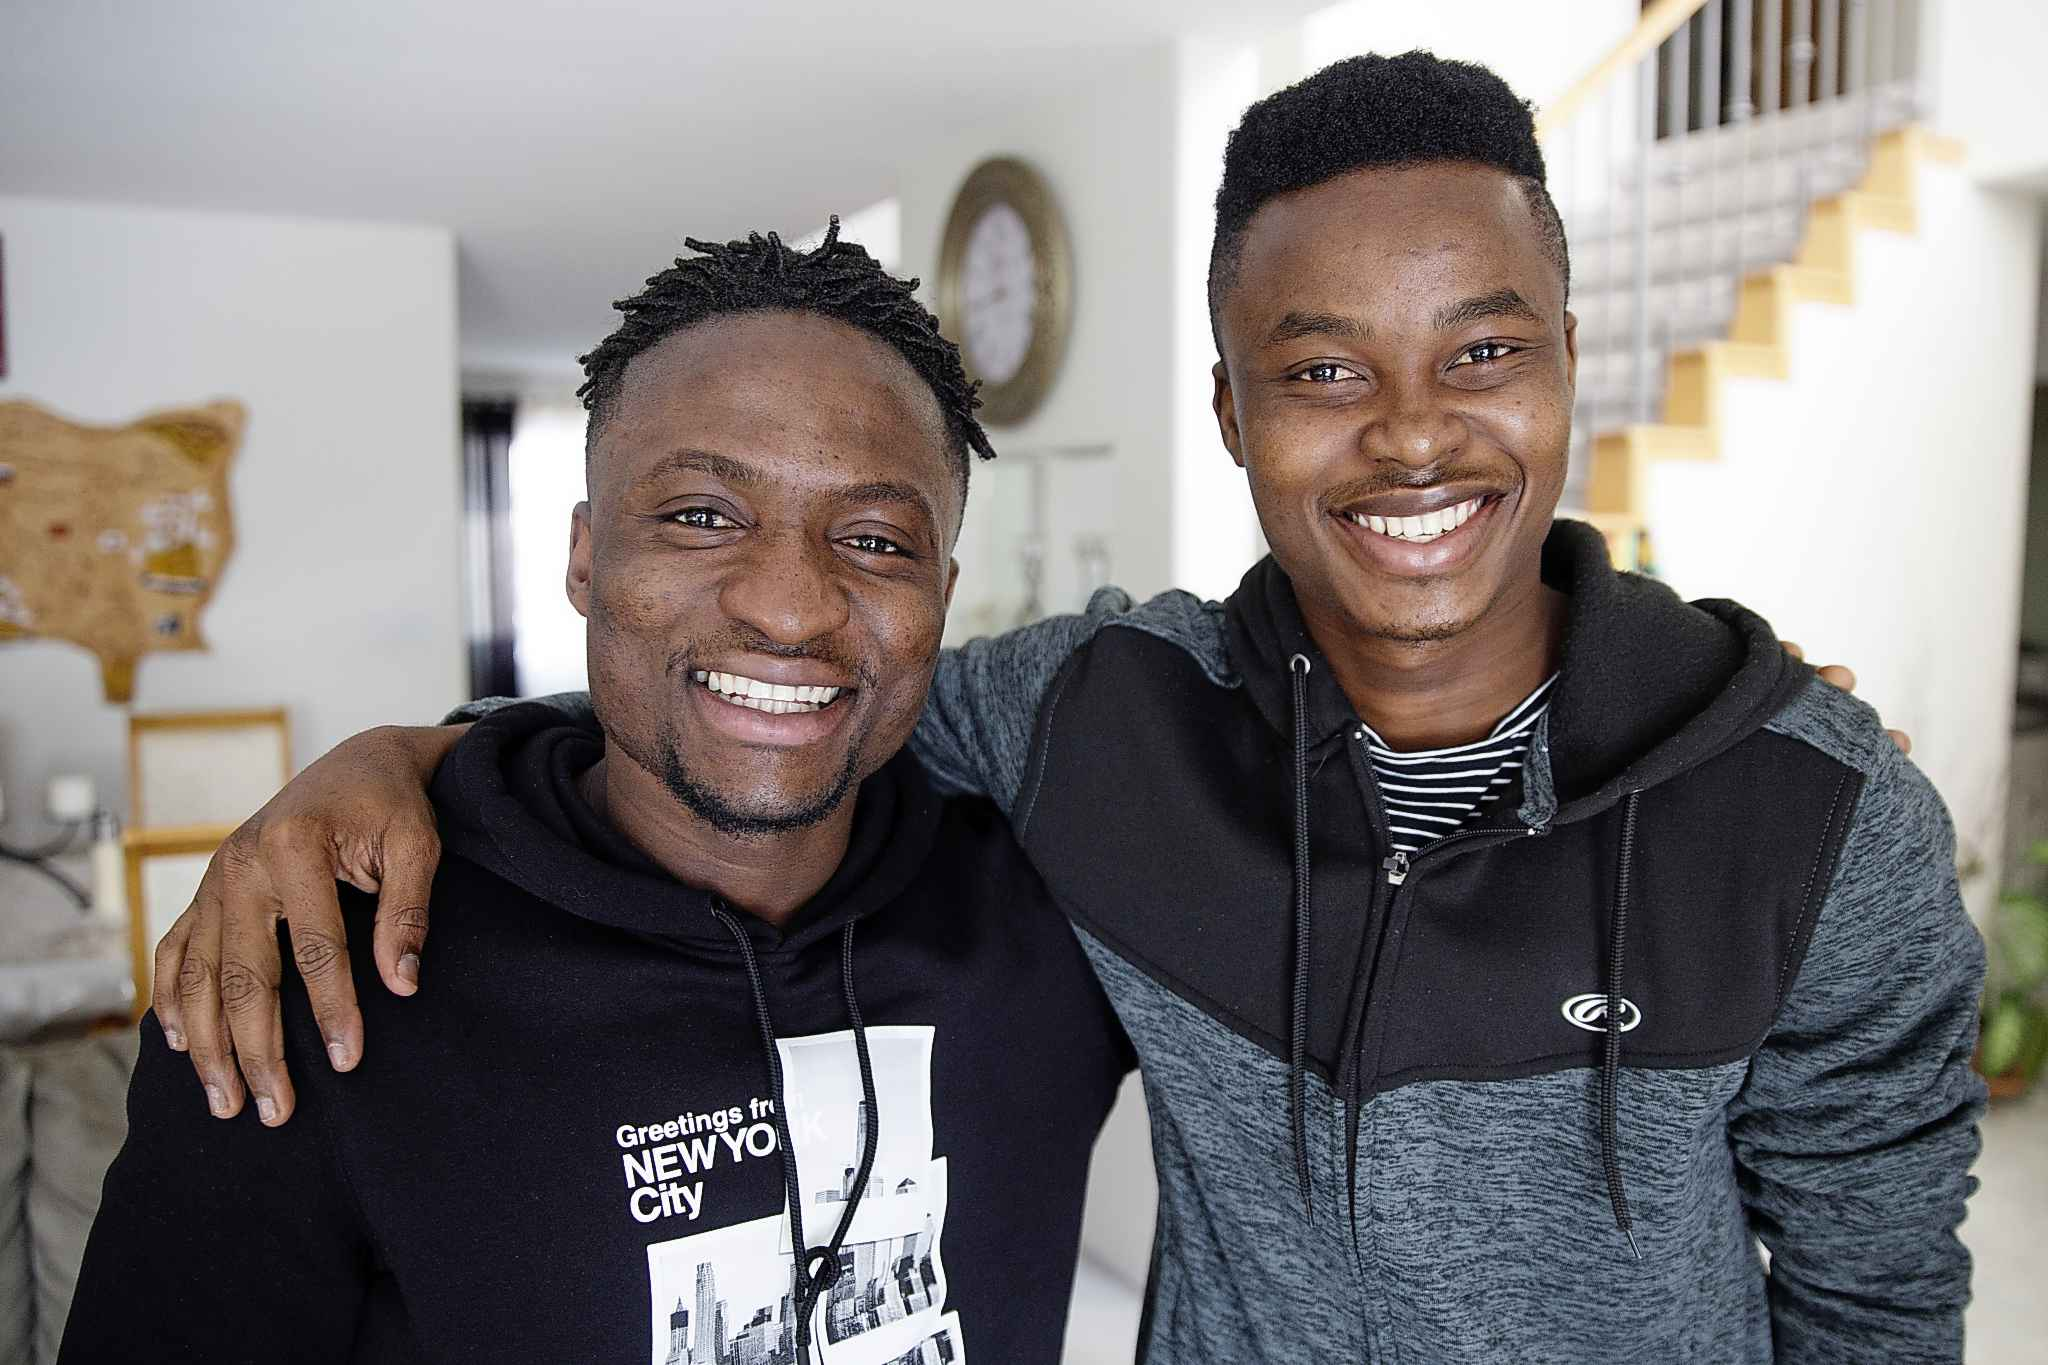 Solomon Kojo Antwi (right) has been living with teammate Raphael Ohin (left) who's also from Ghana and is going into his second year with Valour FC.